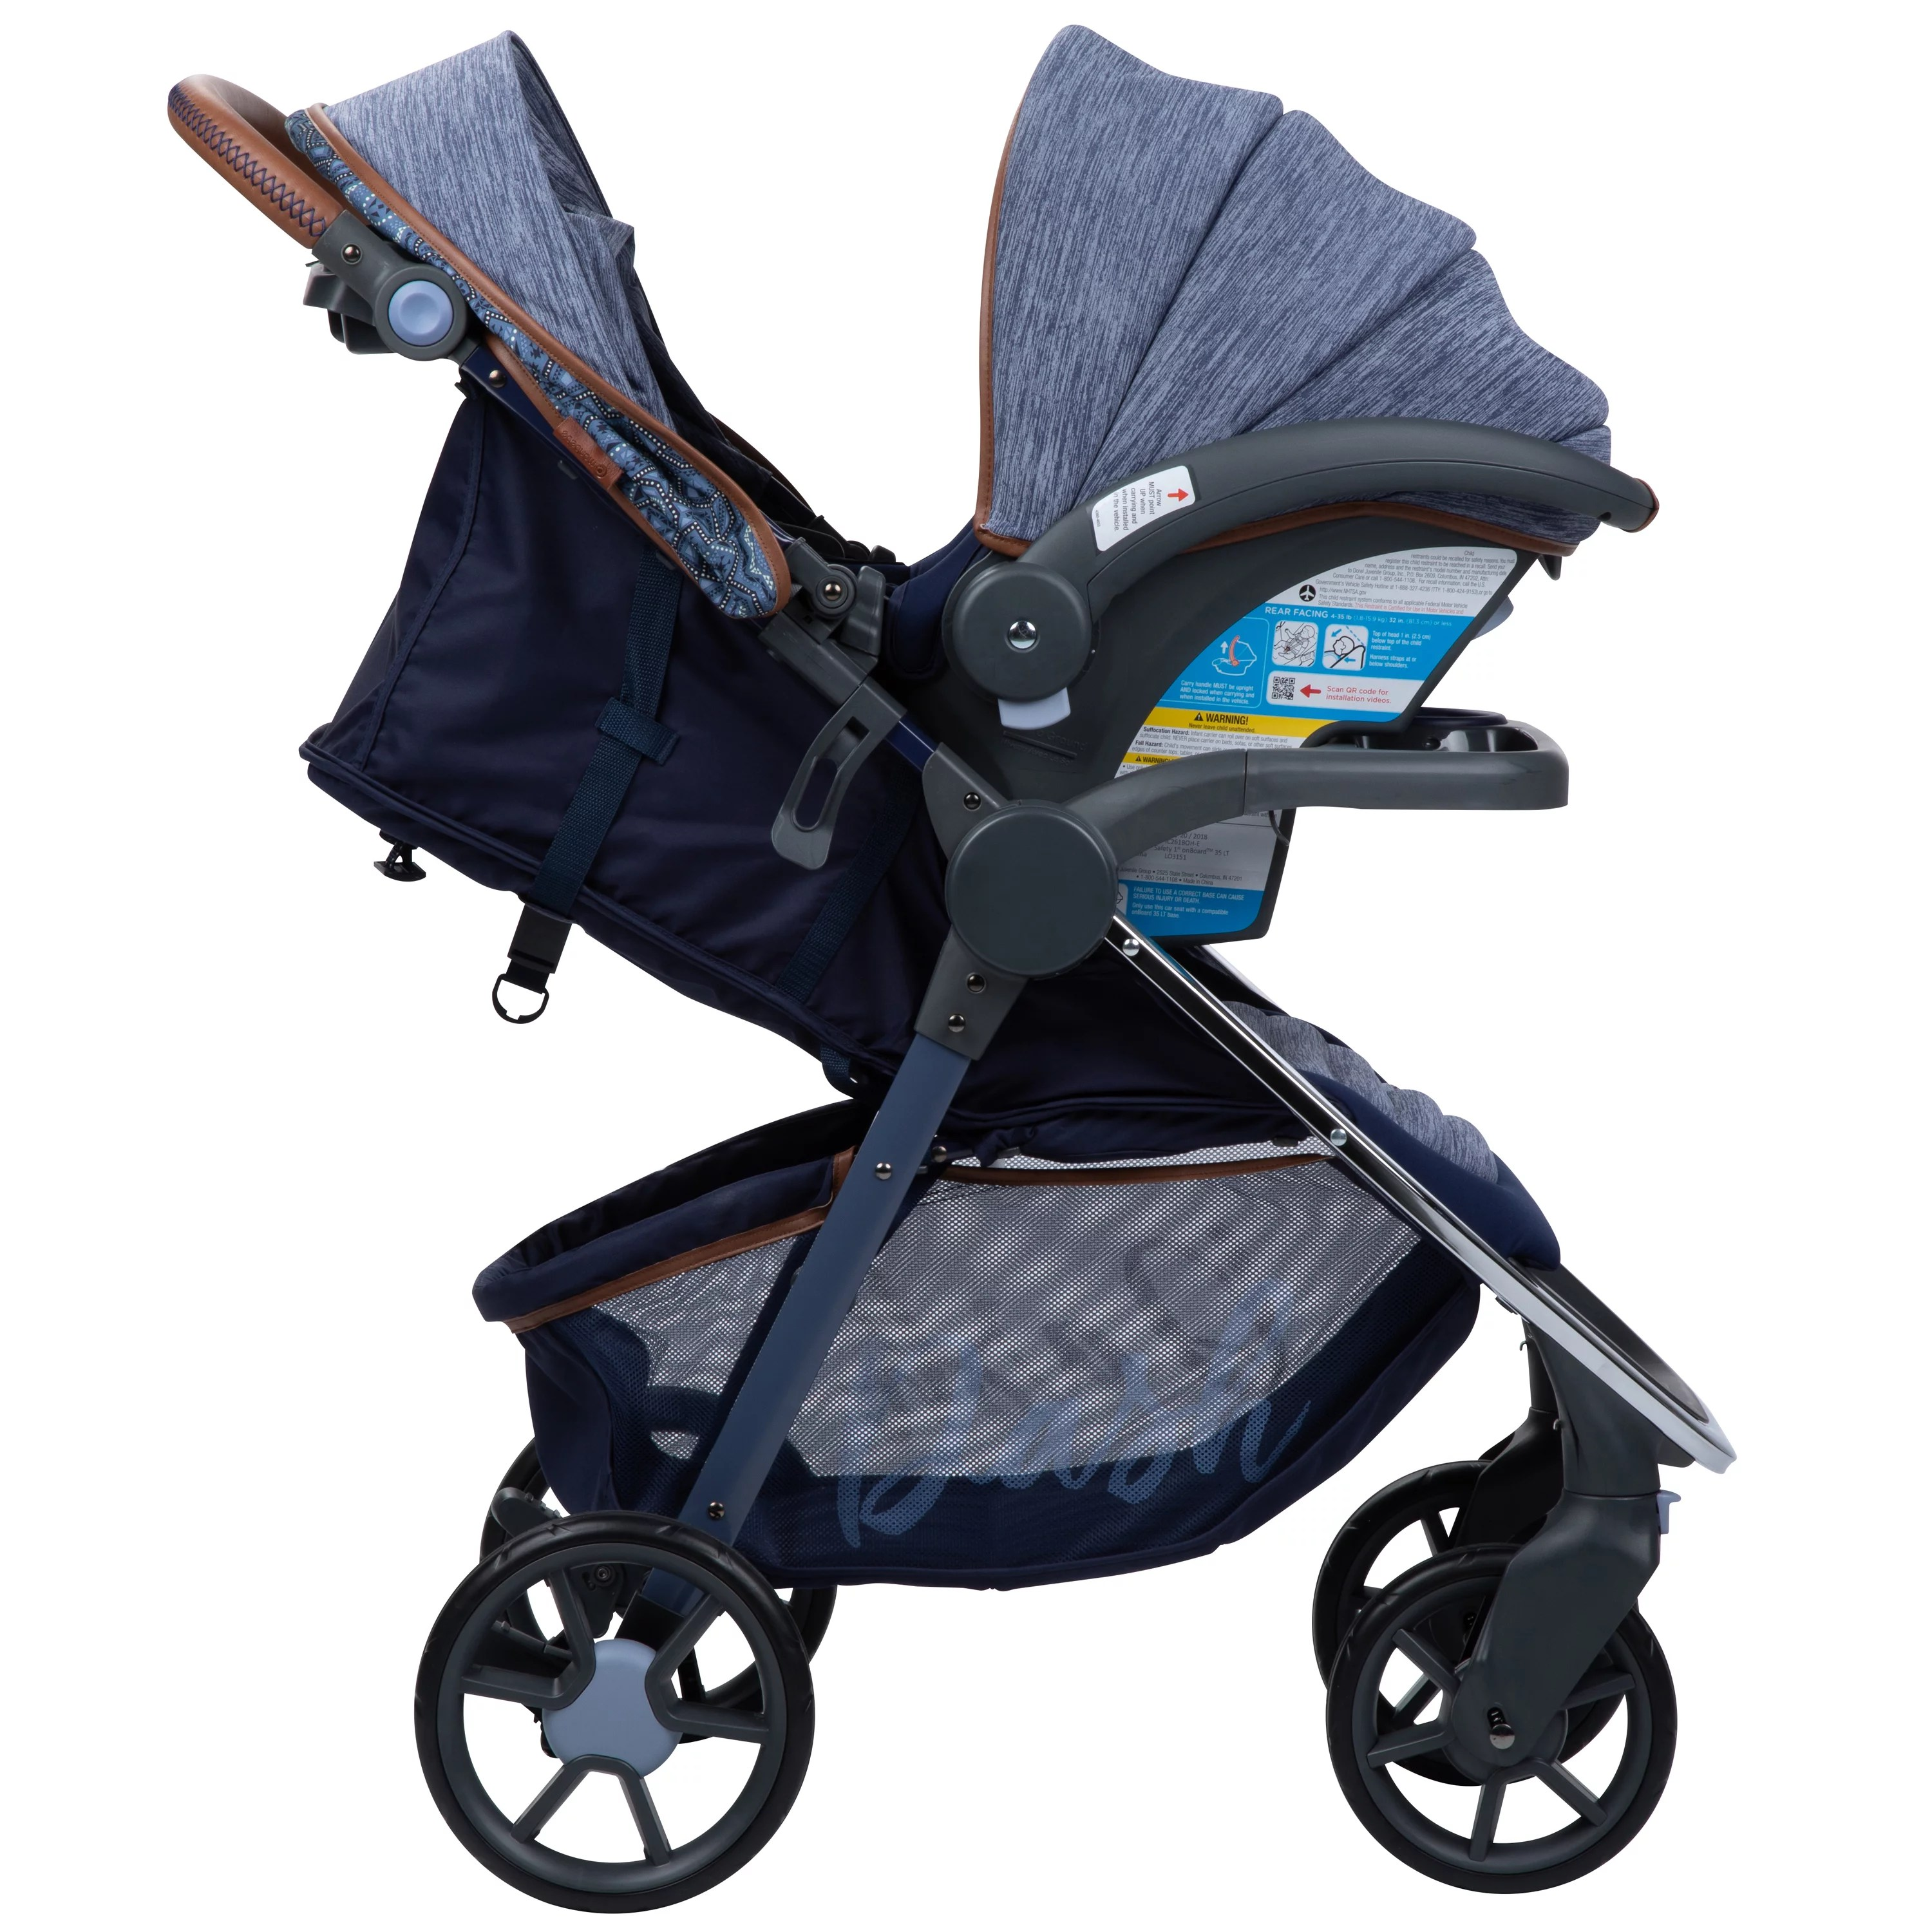 When To Switch From Car Seat To Stroller Monbebe Dash All In One Travel System Boho Walmart